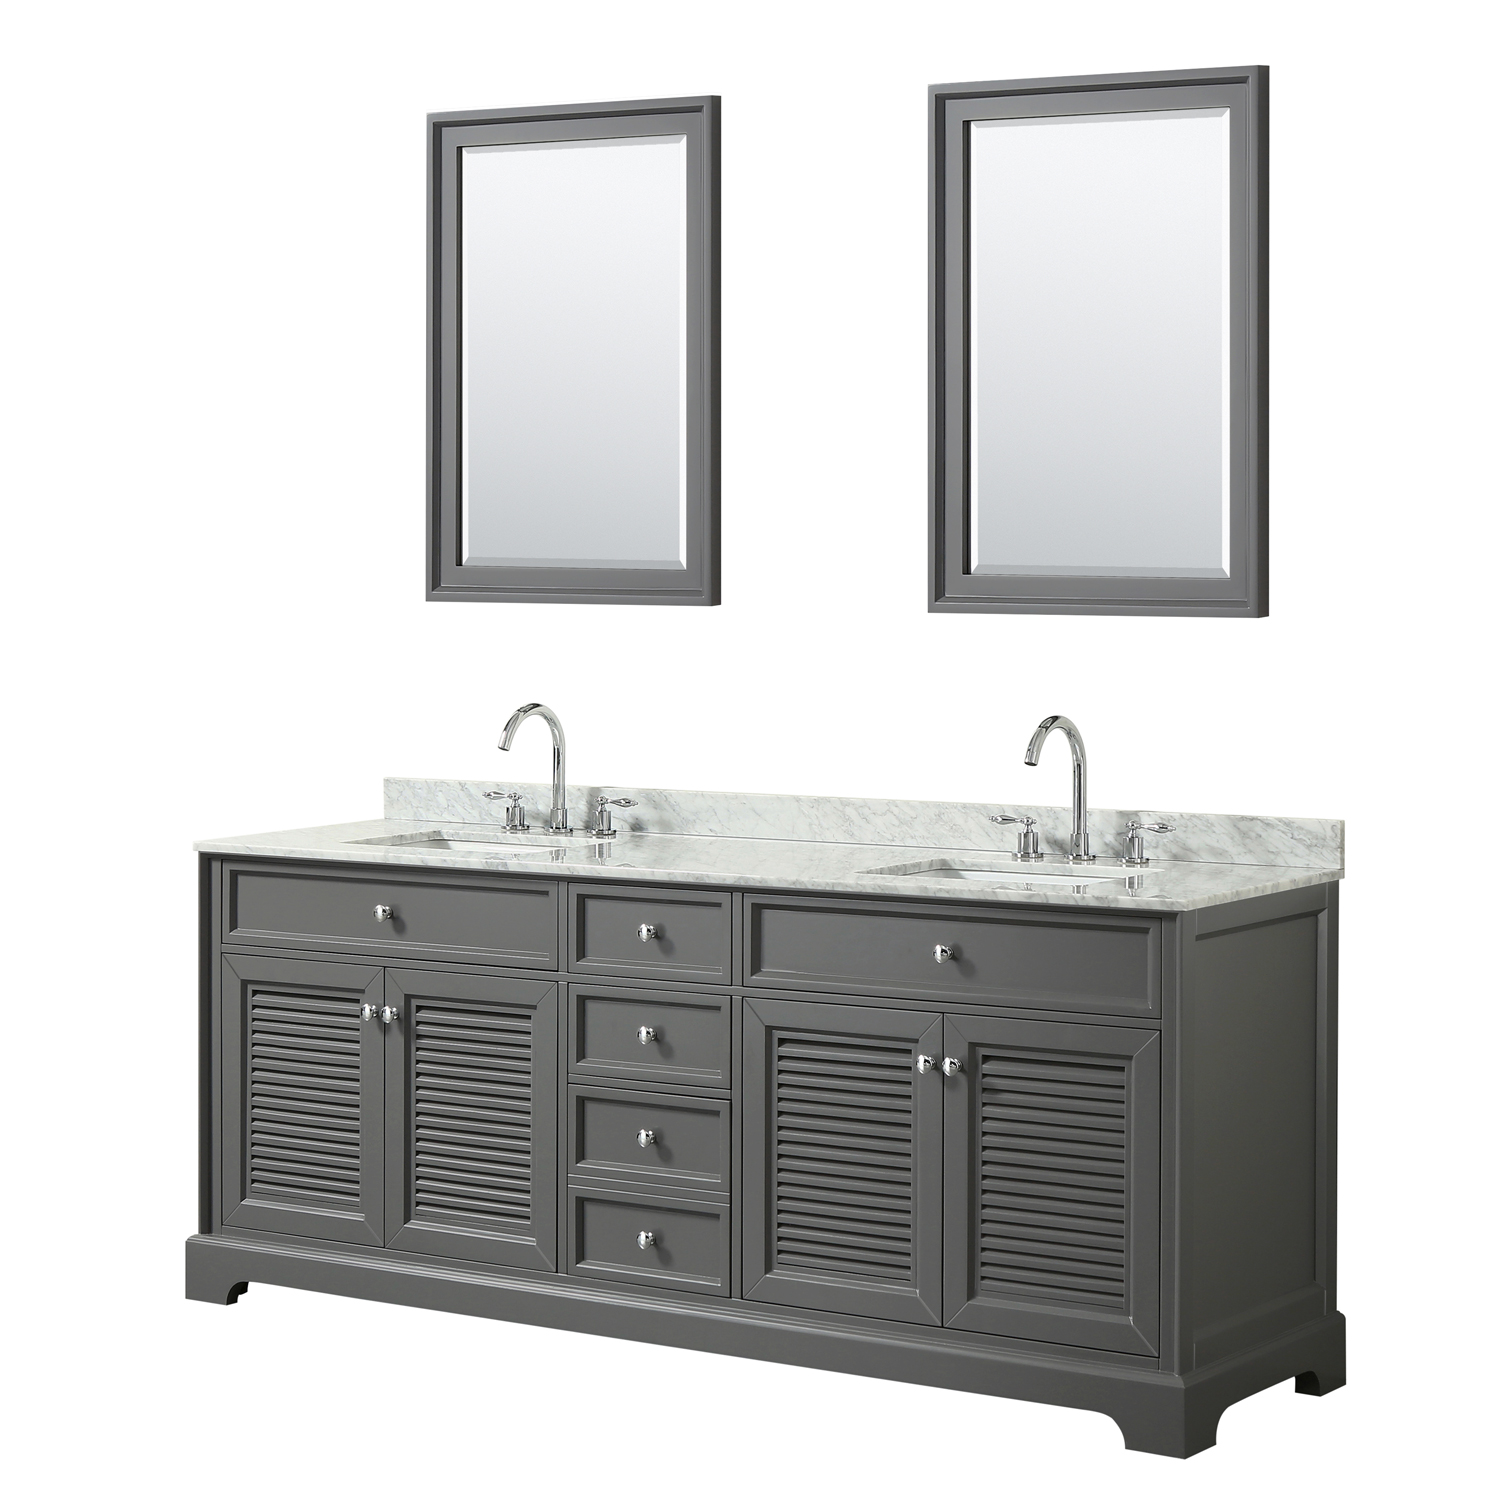 Shop Bathroom Vanities - Buy Factory Direct & Save on Bathroom ...